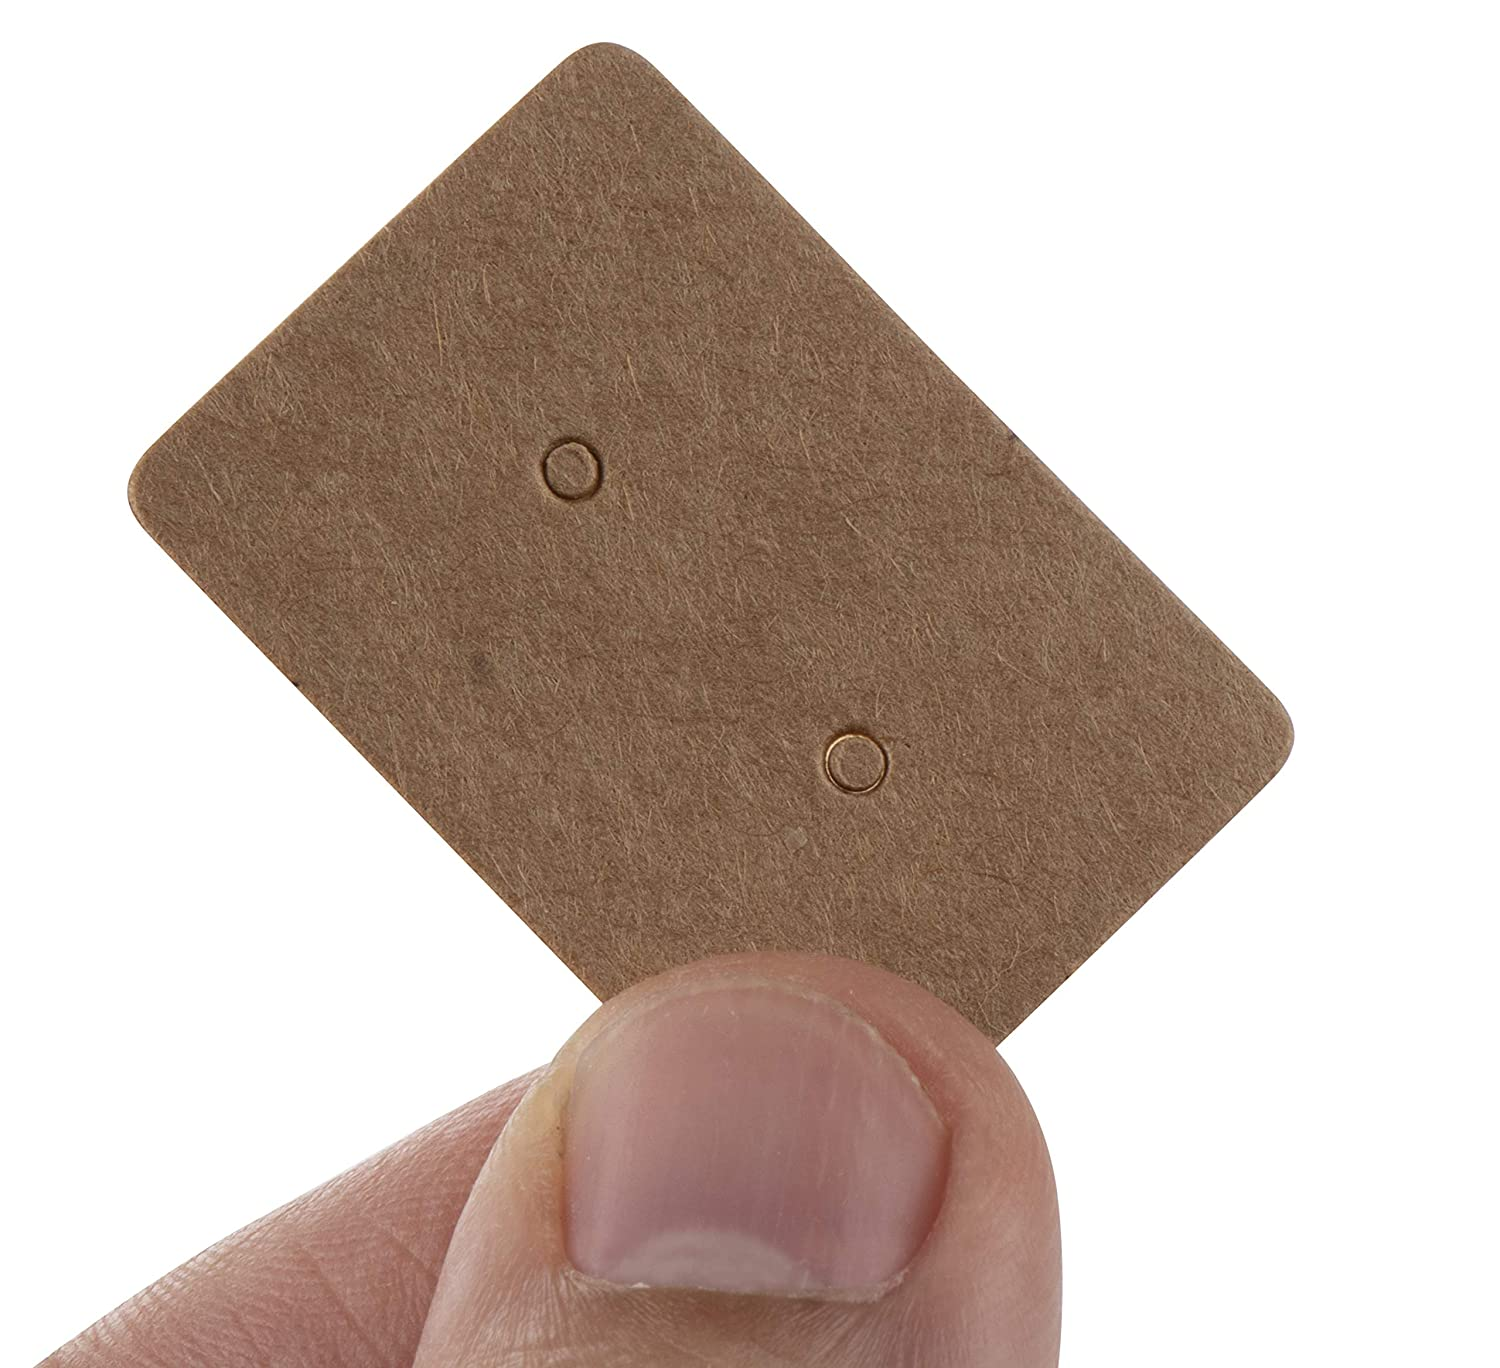 Kraft Color 3.5 x 2 Inches Earring Display Cards for Ear Studs Earring Cards Earrings 200-Pack Earring Card Holder